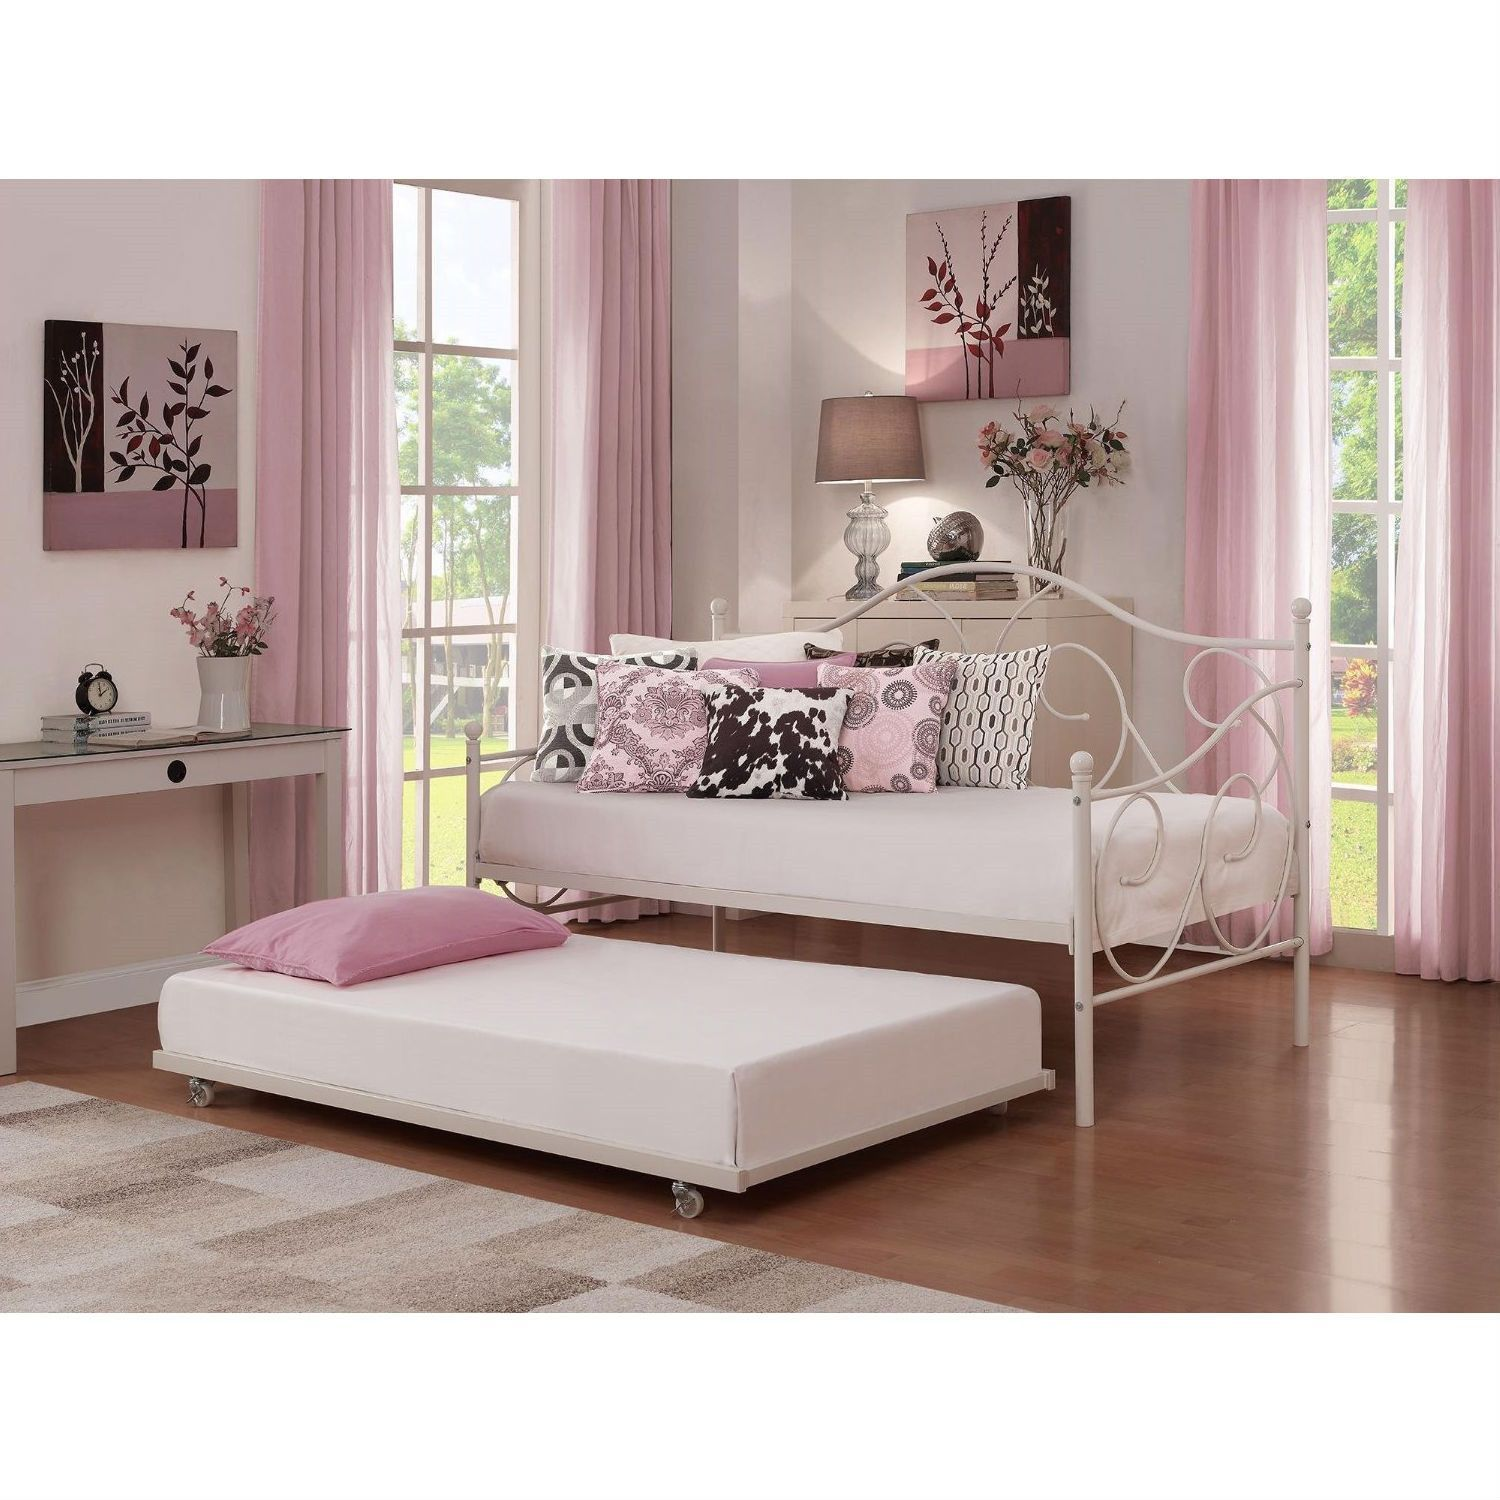 Twin Size White Metal Trundle Bed With Casters Wheels For Under